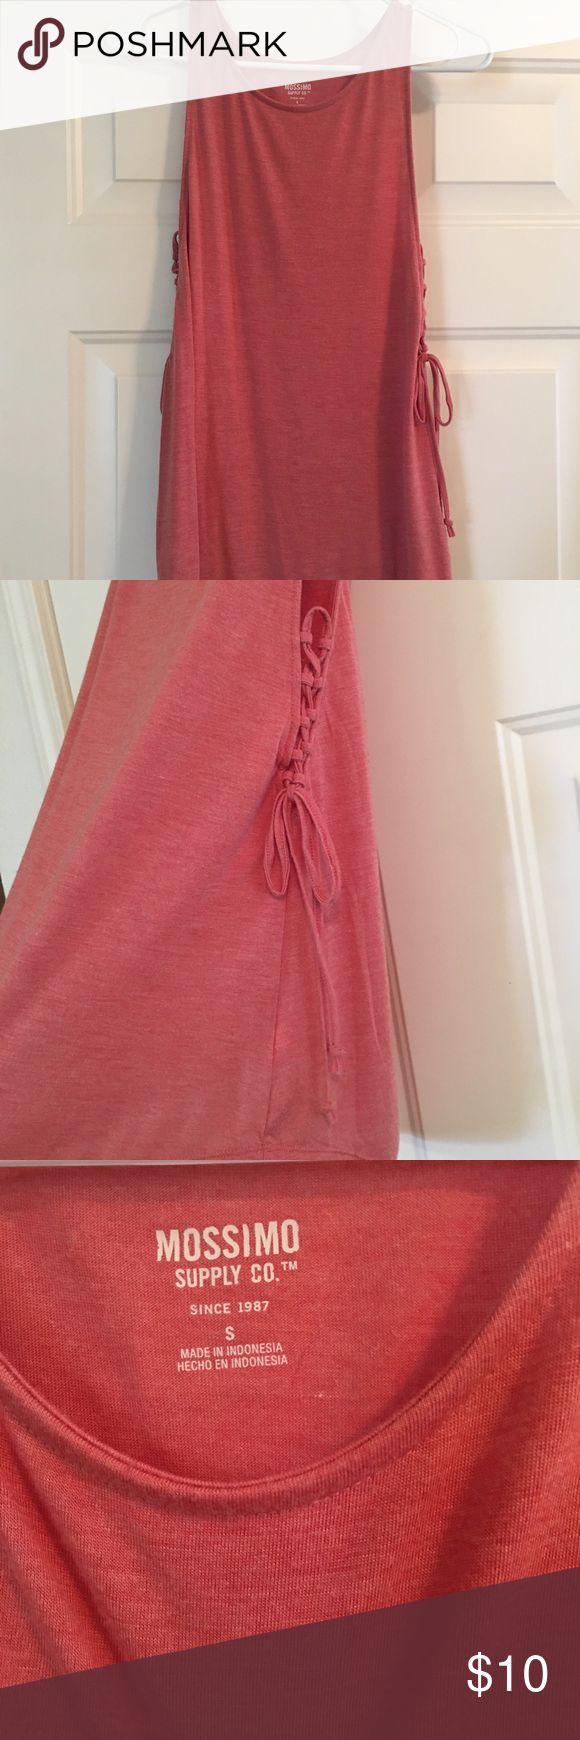 Mossimo Target Juniors Tank Top Mossimo Juniors coral/peach tank top with lace up details on either side, size small. Only worn once. Smoke free home. Mossimo Supply Co Tops Tank Tops